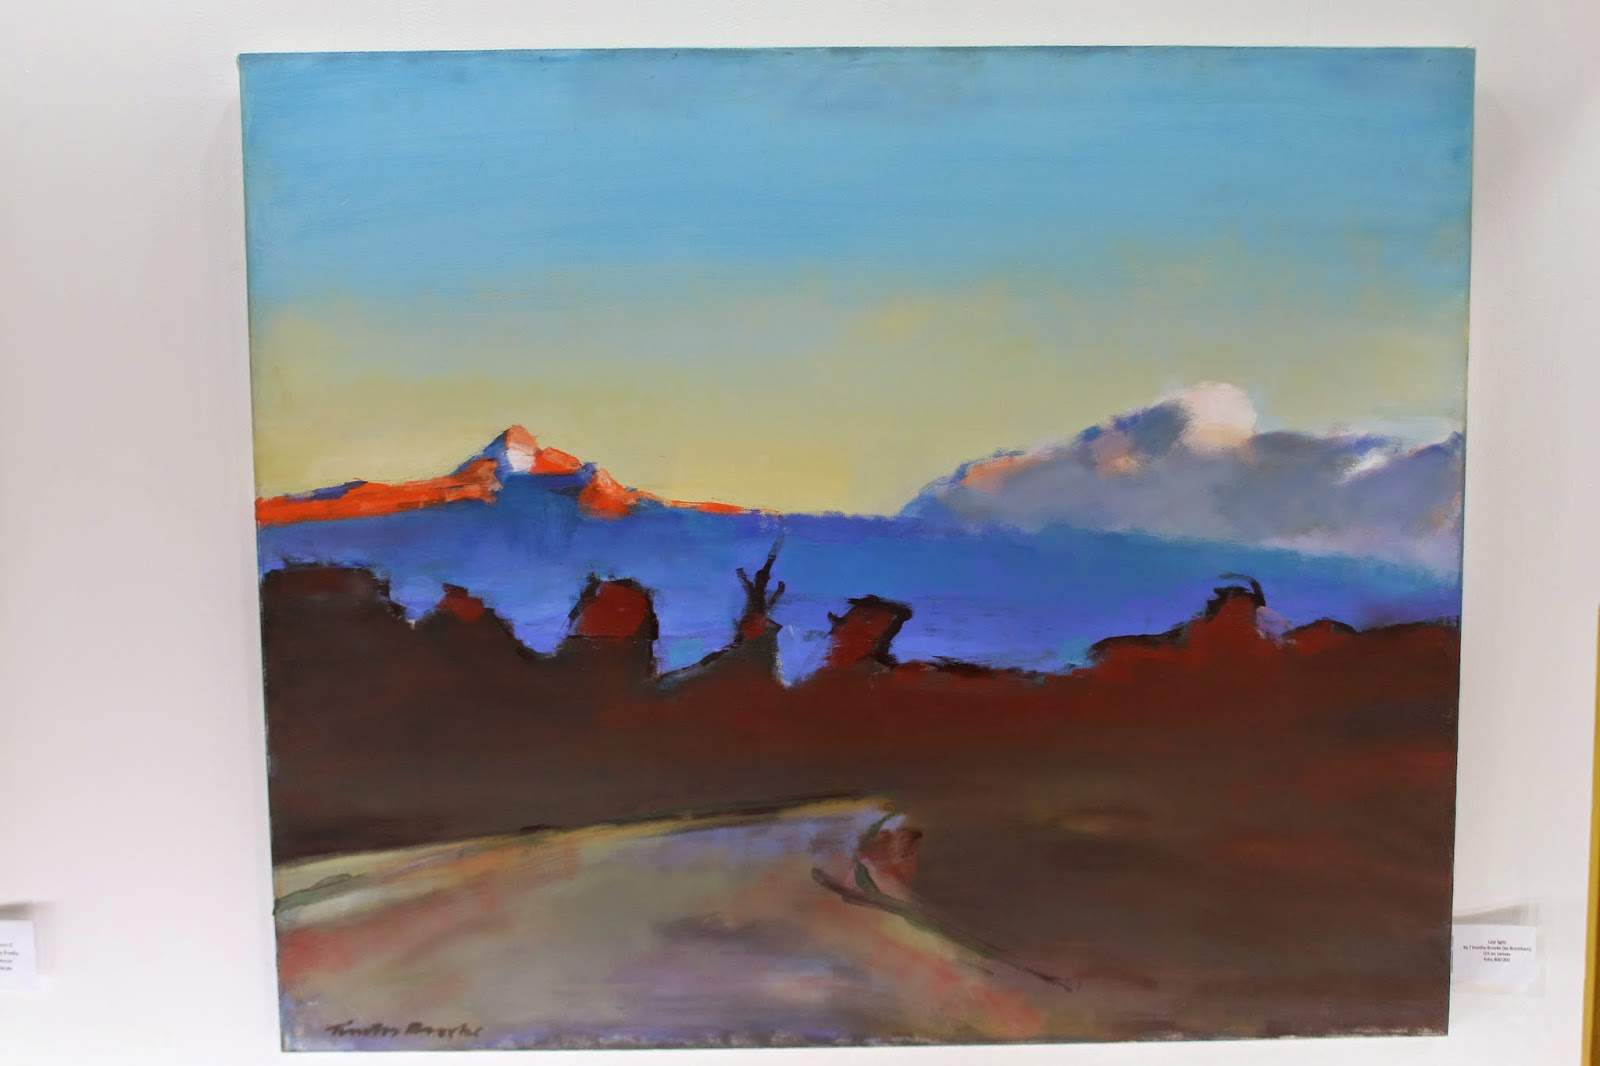 Last light is lovely landscape by kenya born painter timothy brooke whose work is up at one off gallery till end of may